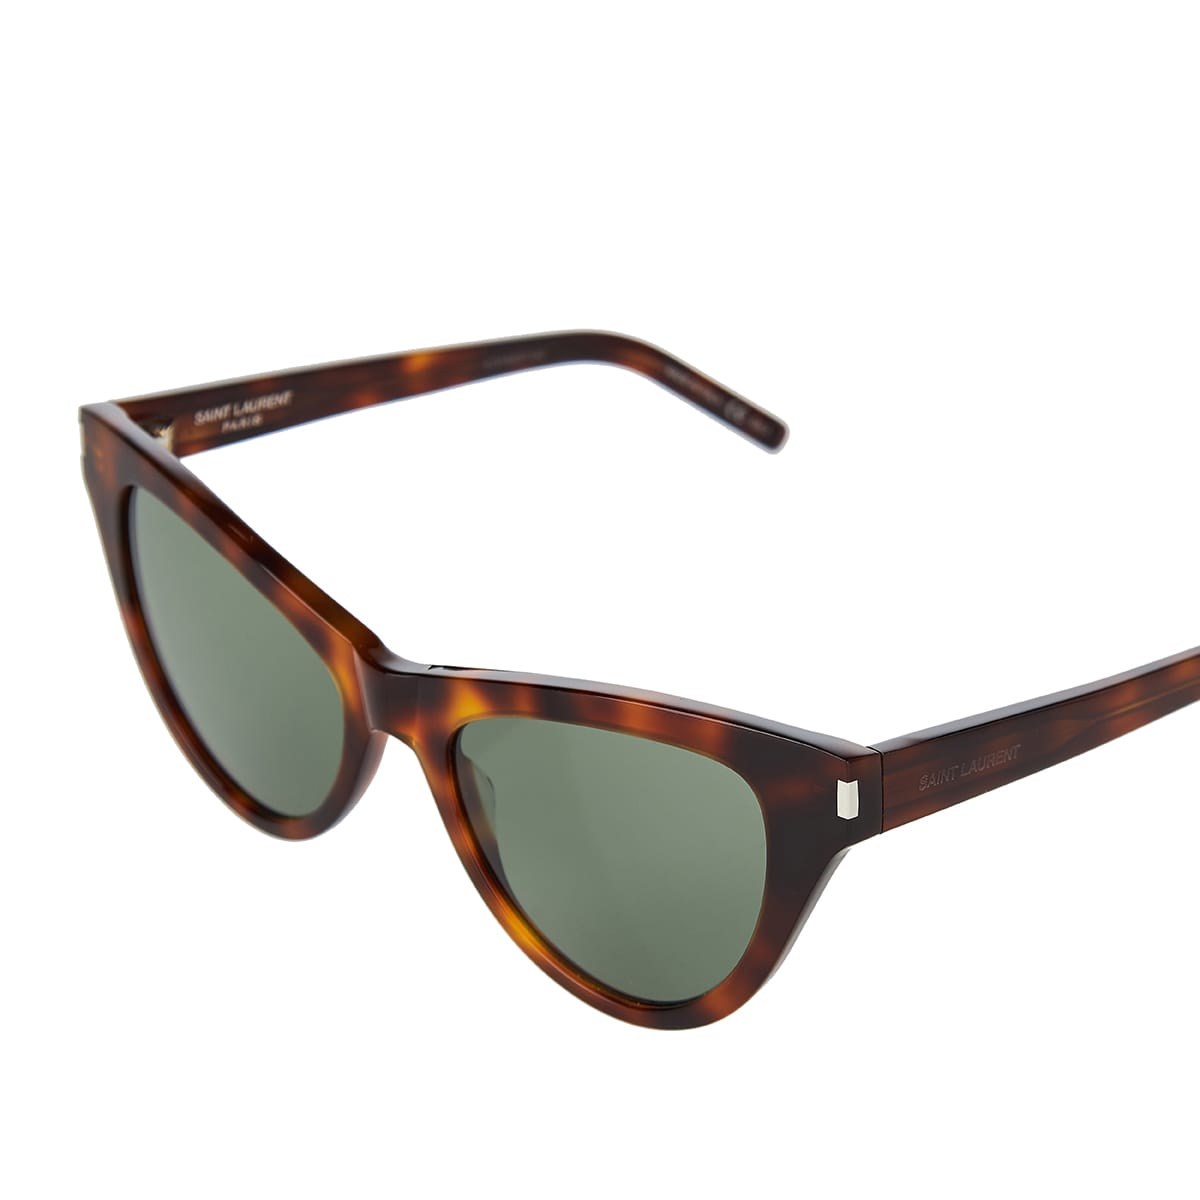 SL 425 cat-eye sunglasses